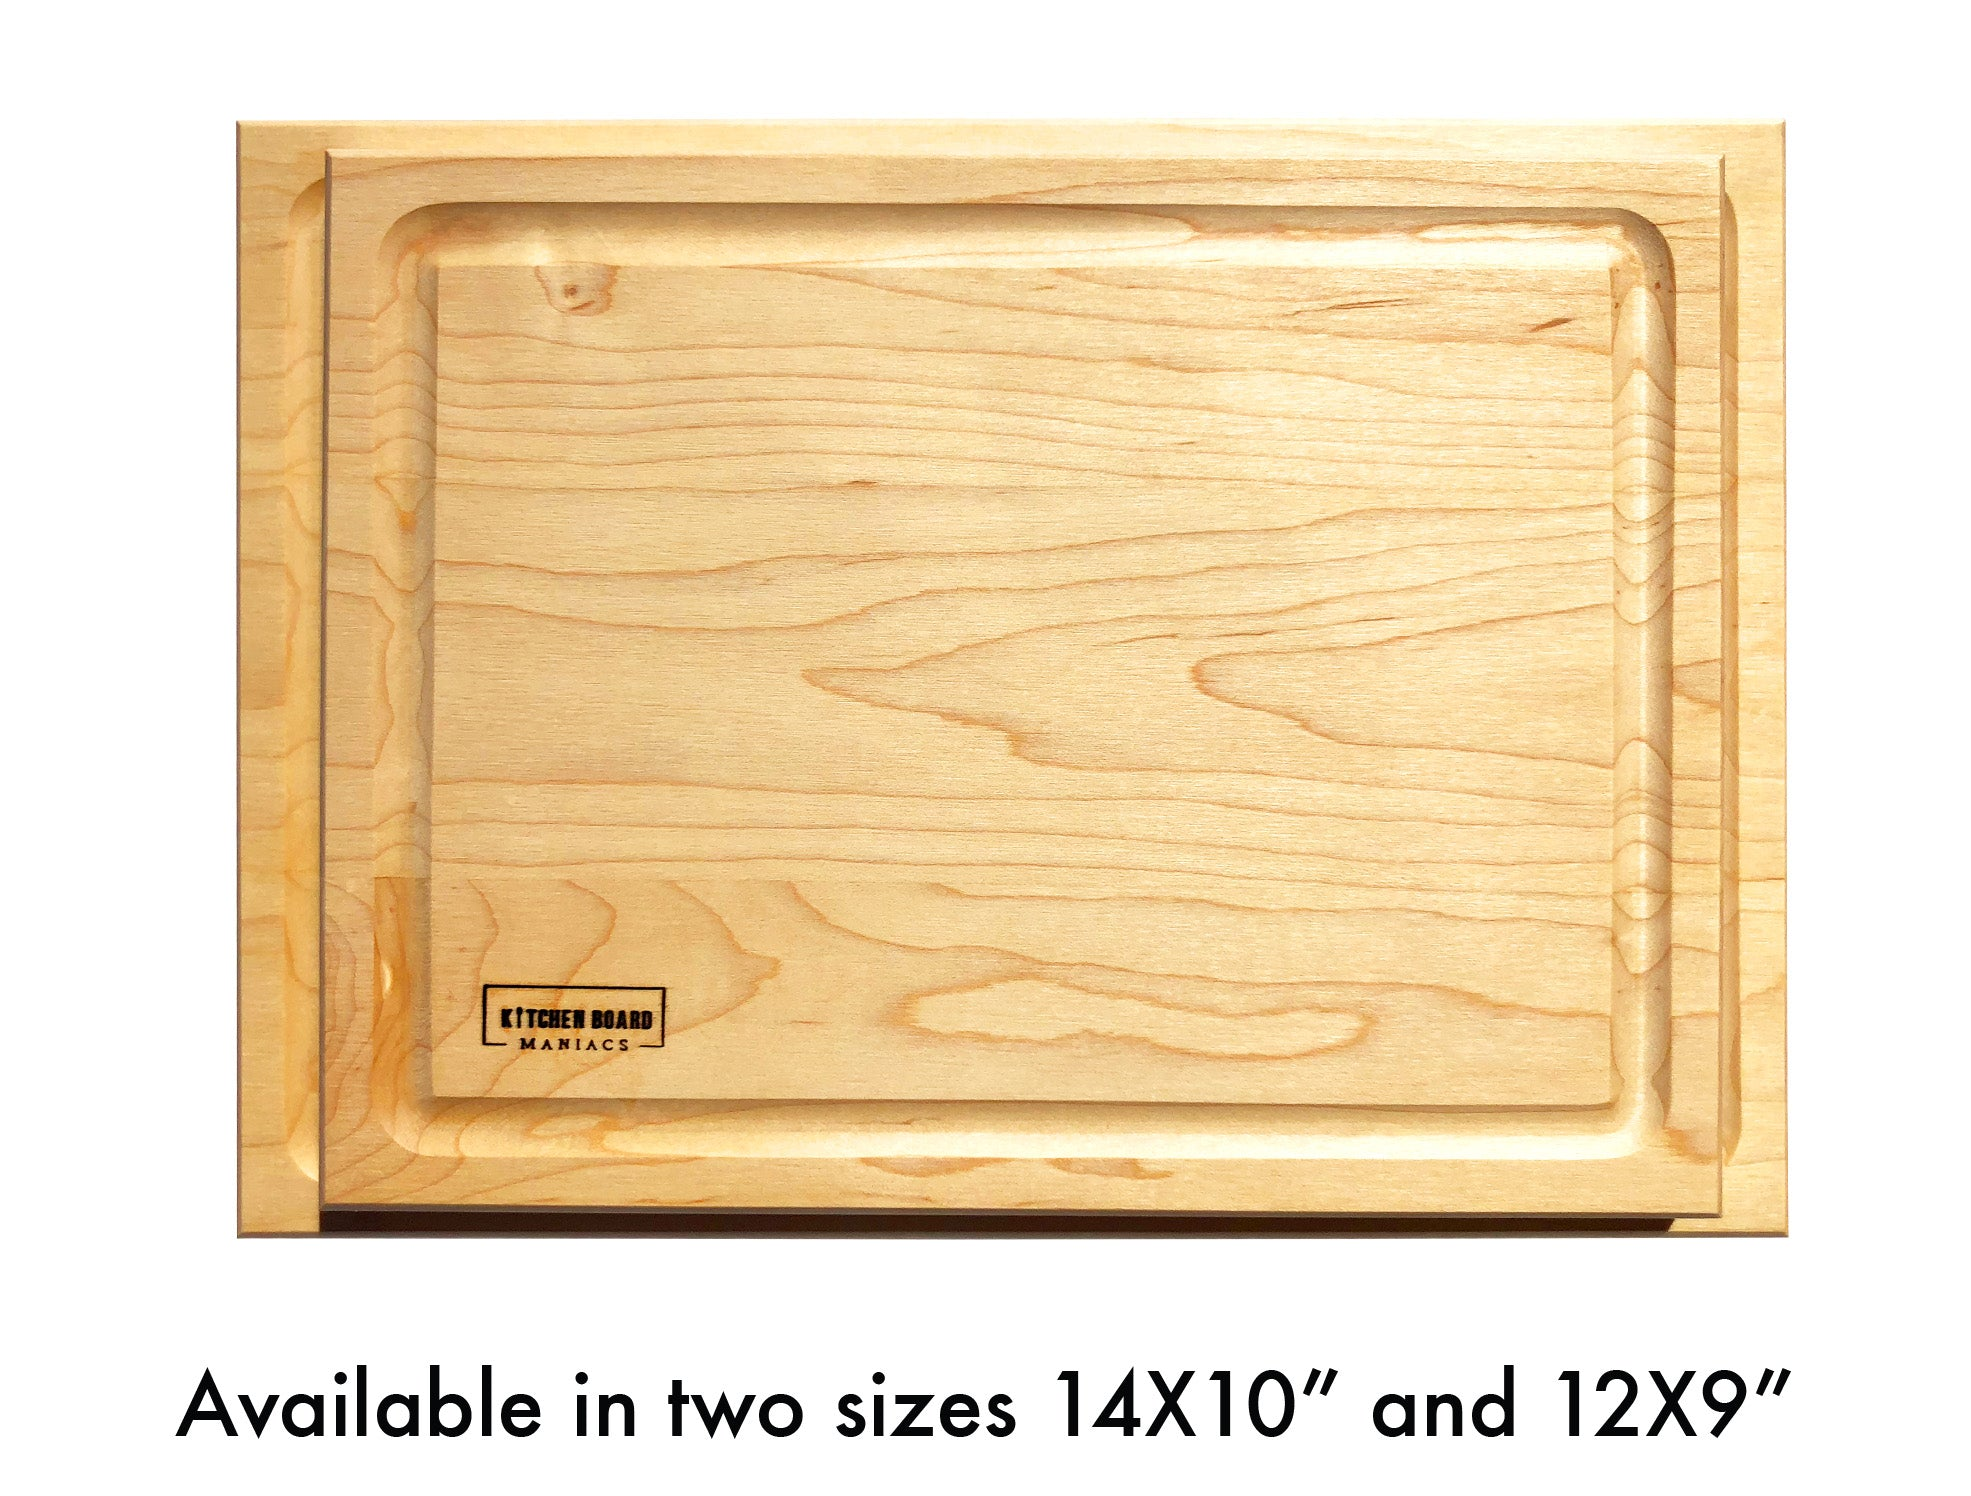 LARGE Maple Wood Cutting Boards For Kitchen 14x10